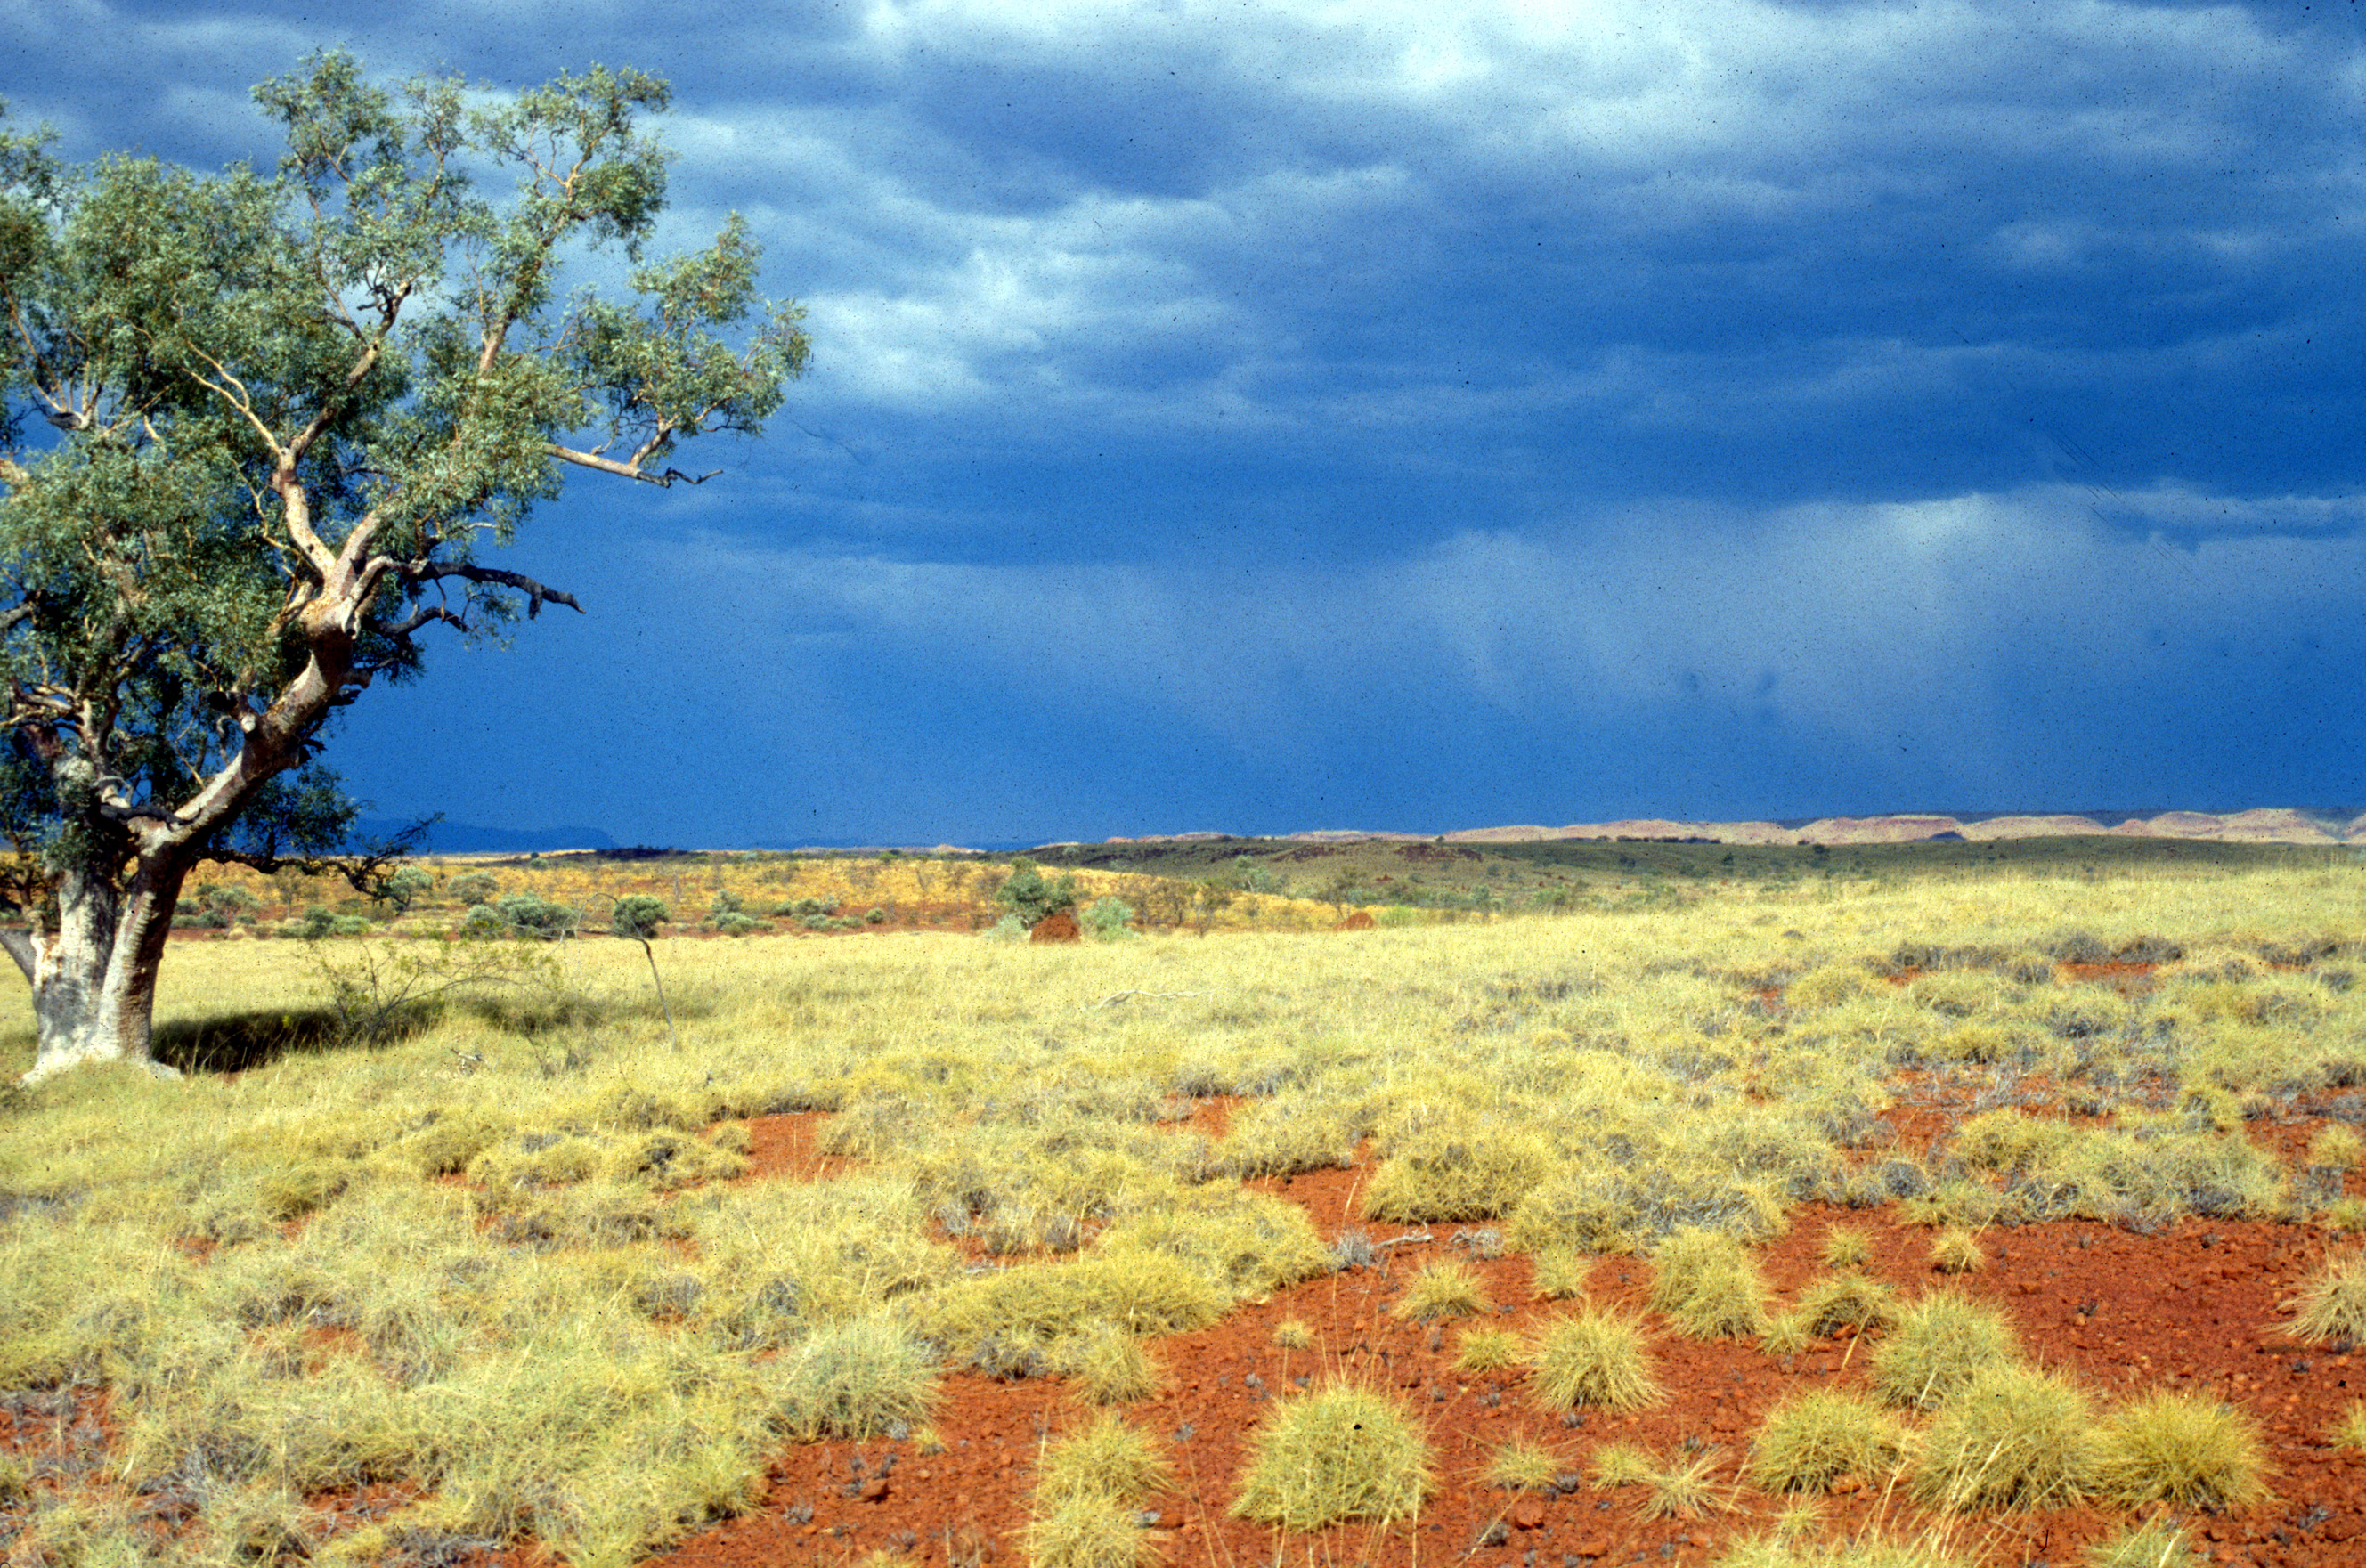 Spinifex plain landscape with a tree and stormy sky